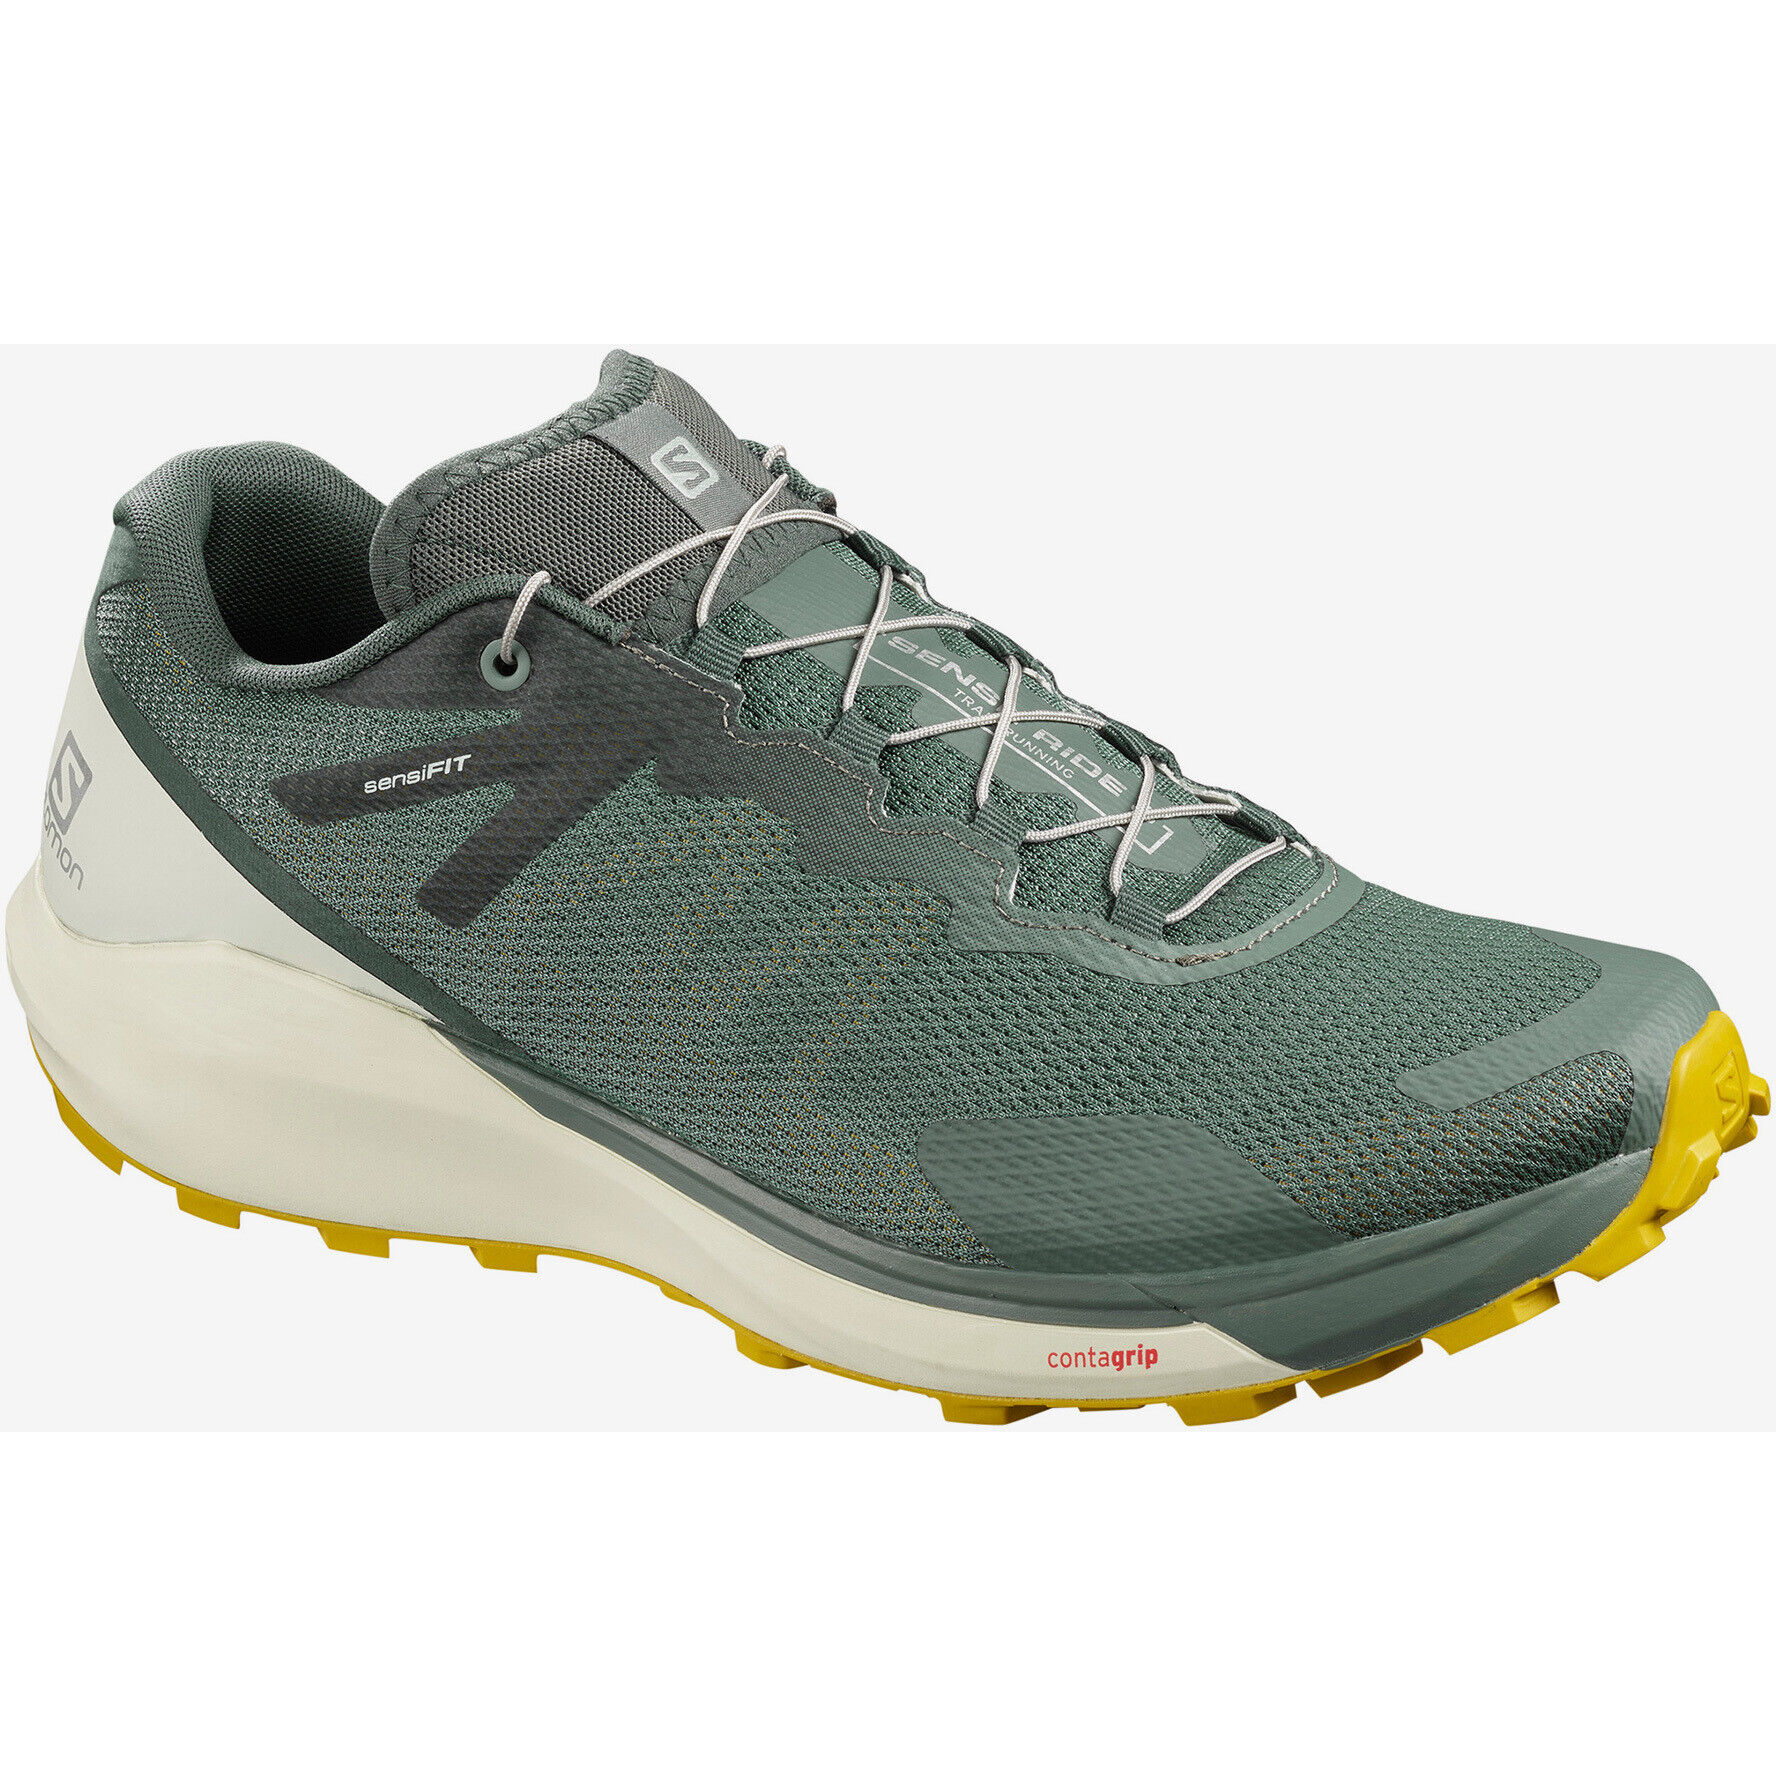 Salomon Salomon Sense Ride 2 GTX Mens Running Shoes Gore Tex